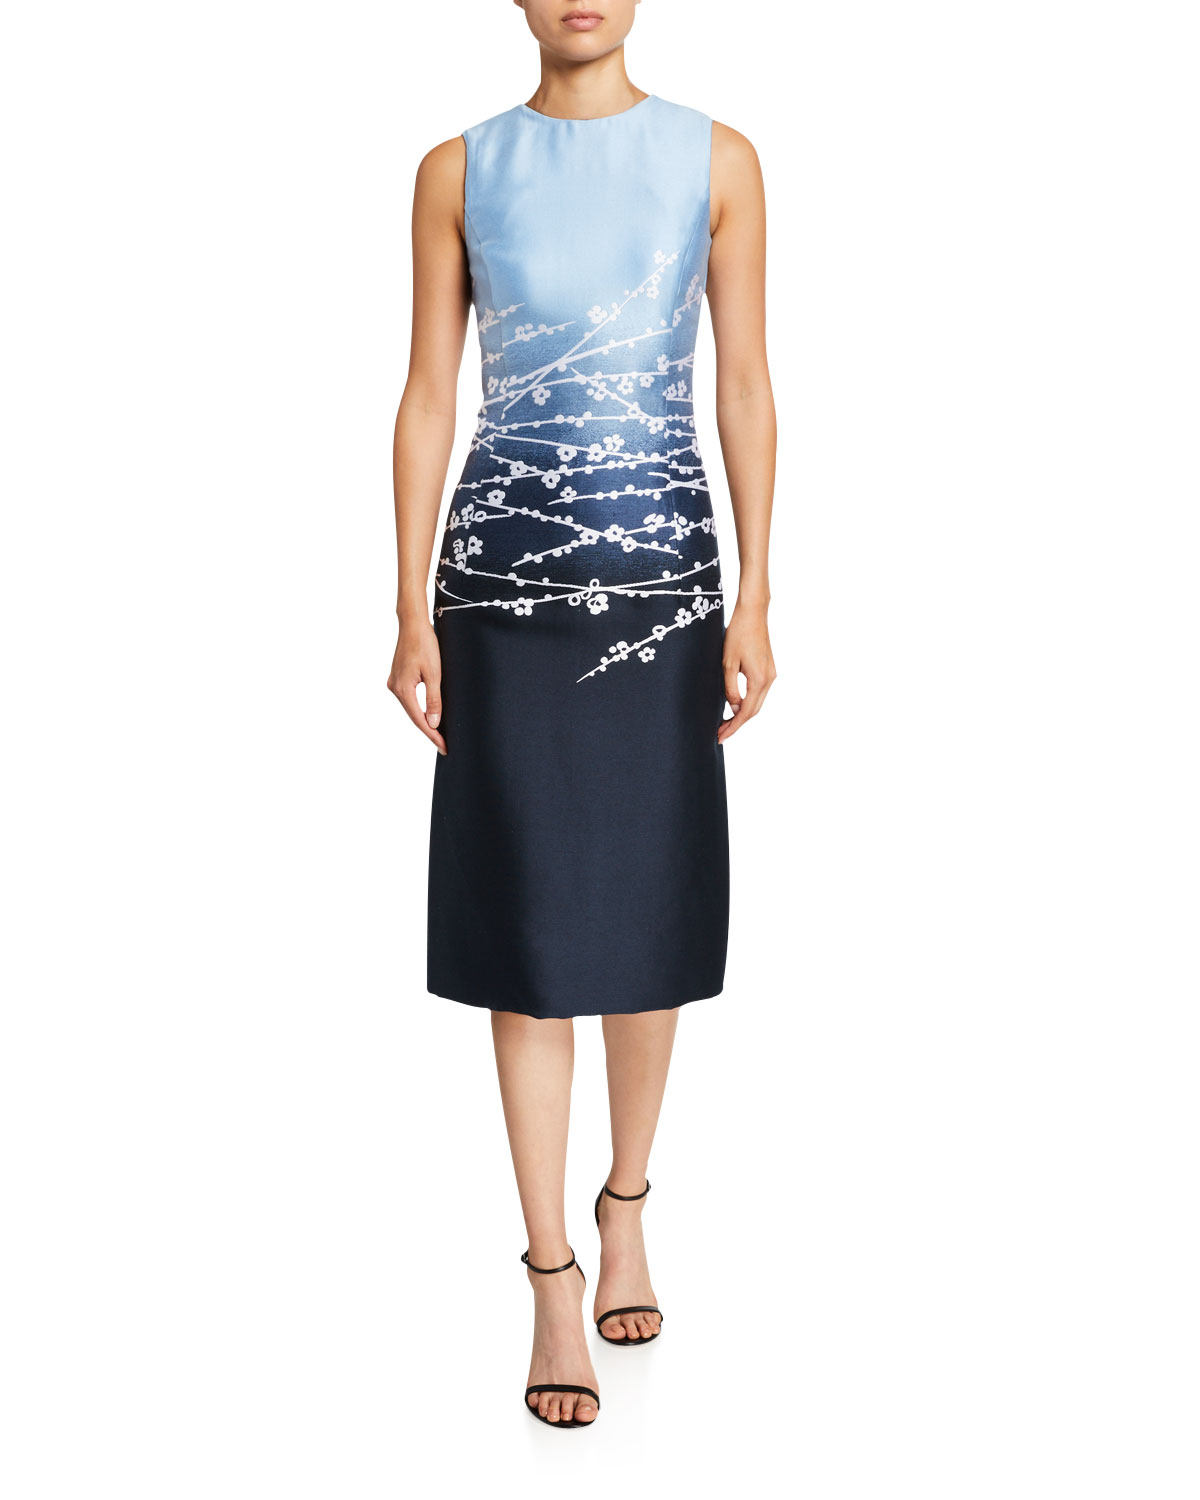 Oscar de la Renta Degrade Sateen Fitted Dress